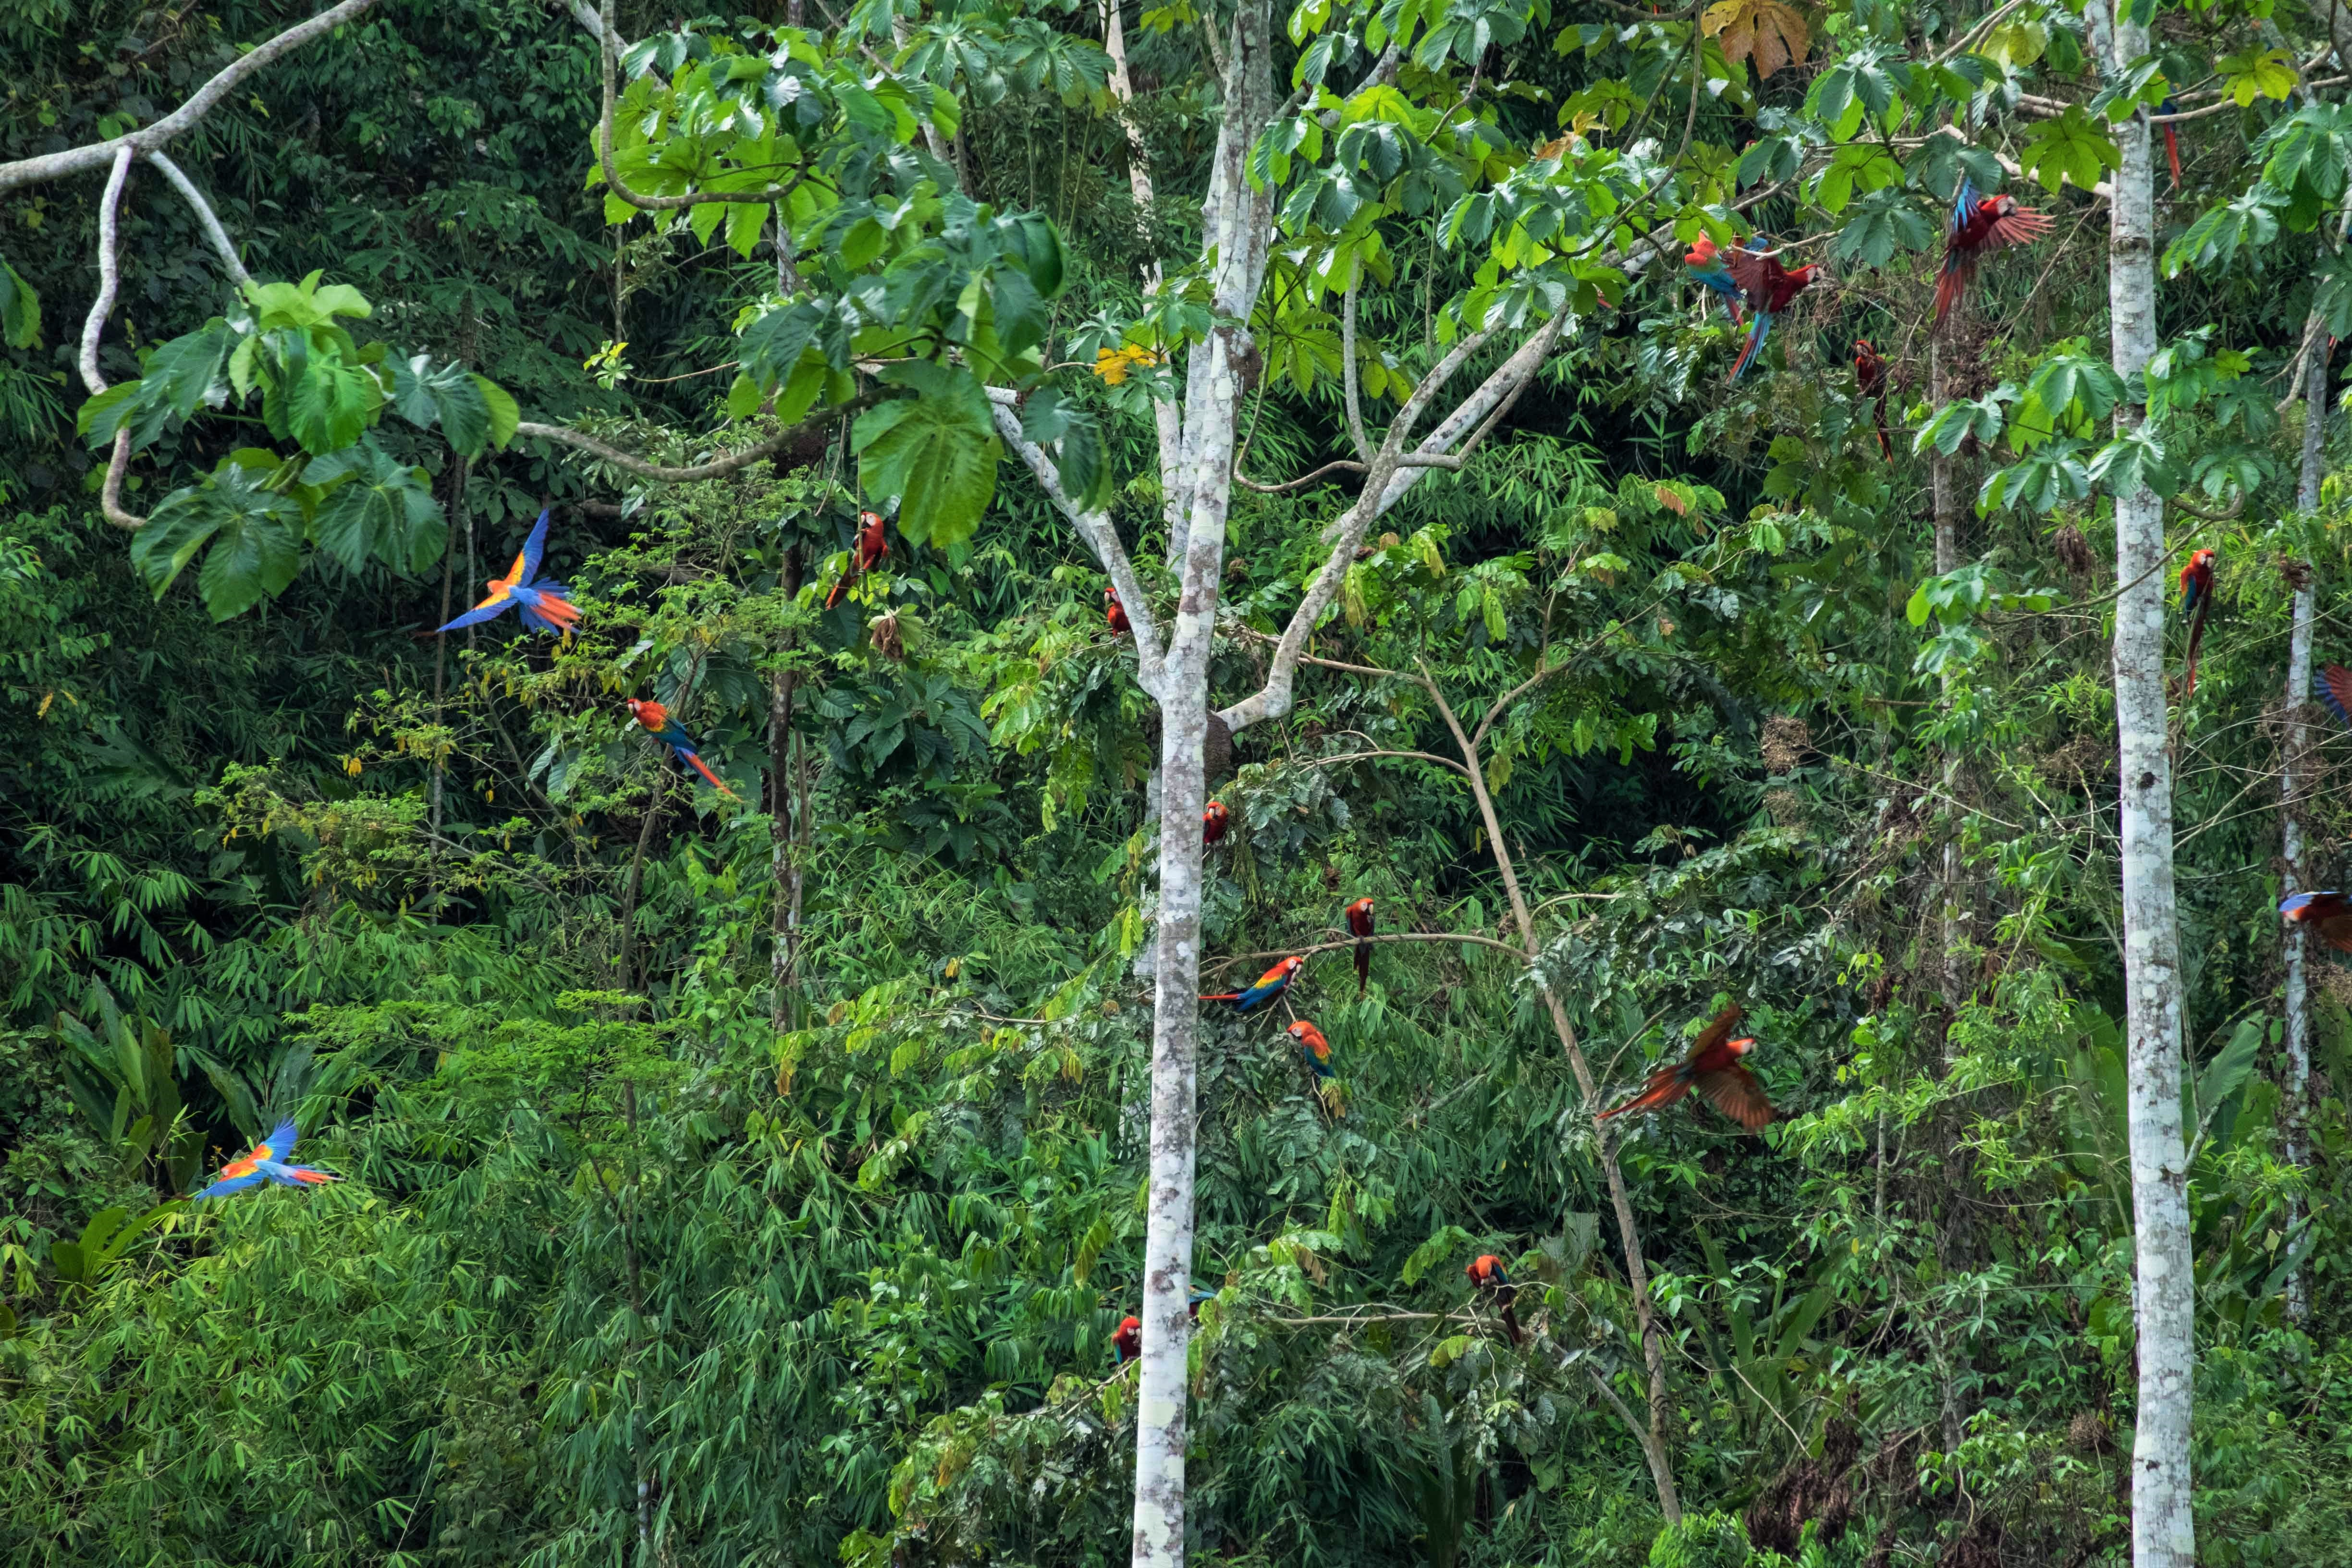 Macaws on trees